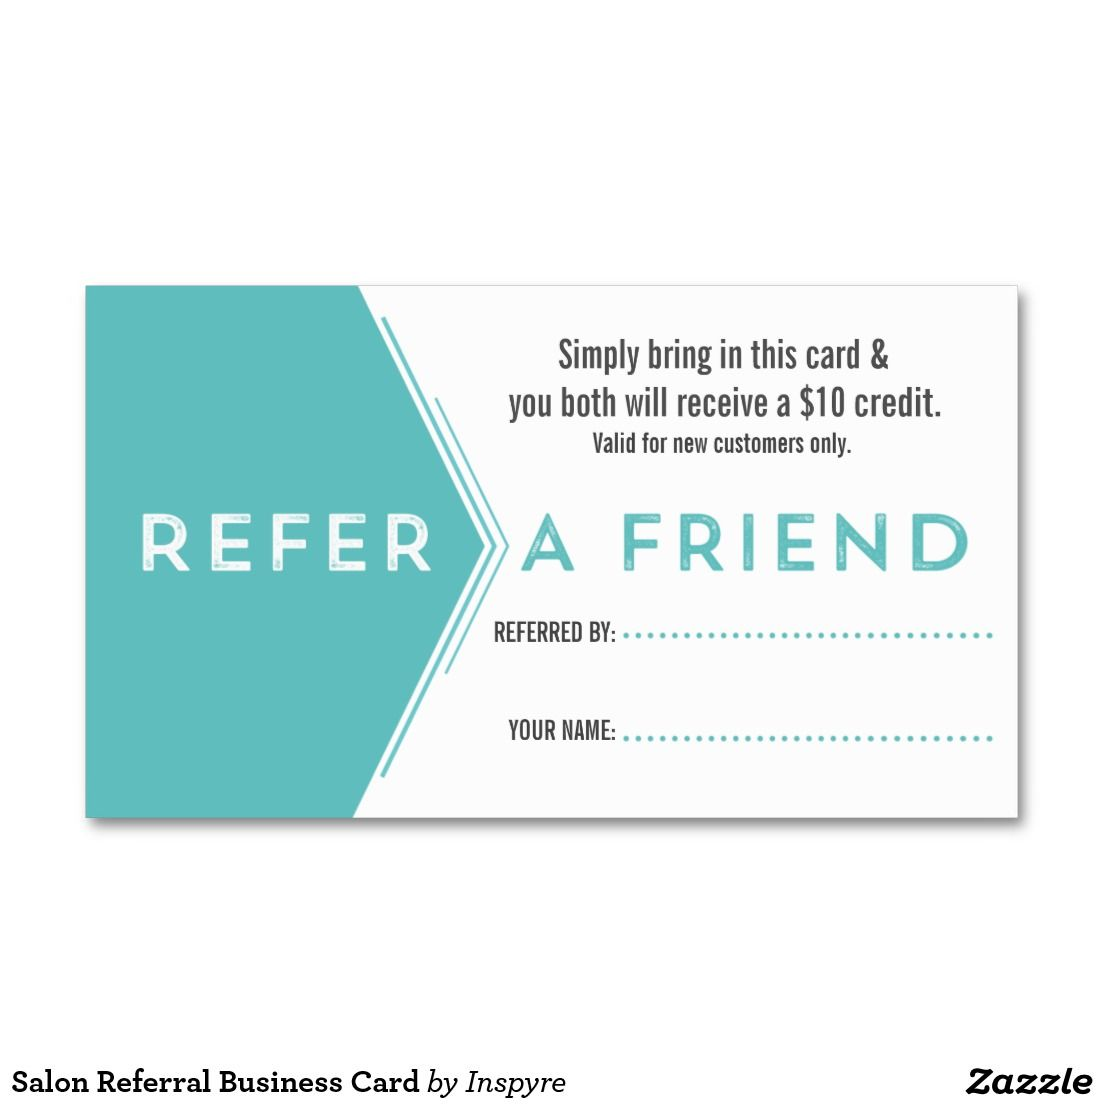 salon referral business card template make it yours salonreferralcard salonbusinesscard. Black Bedroom Furniture Sets. Home Design Ideas